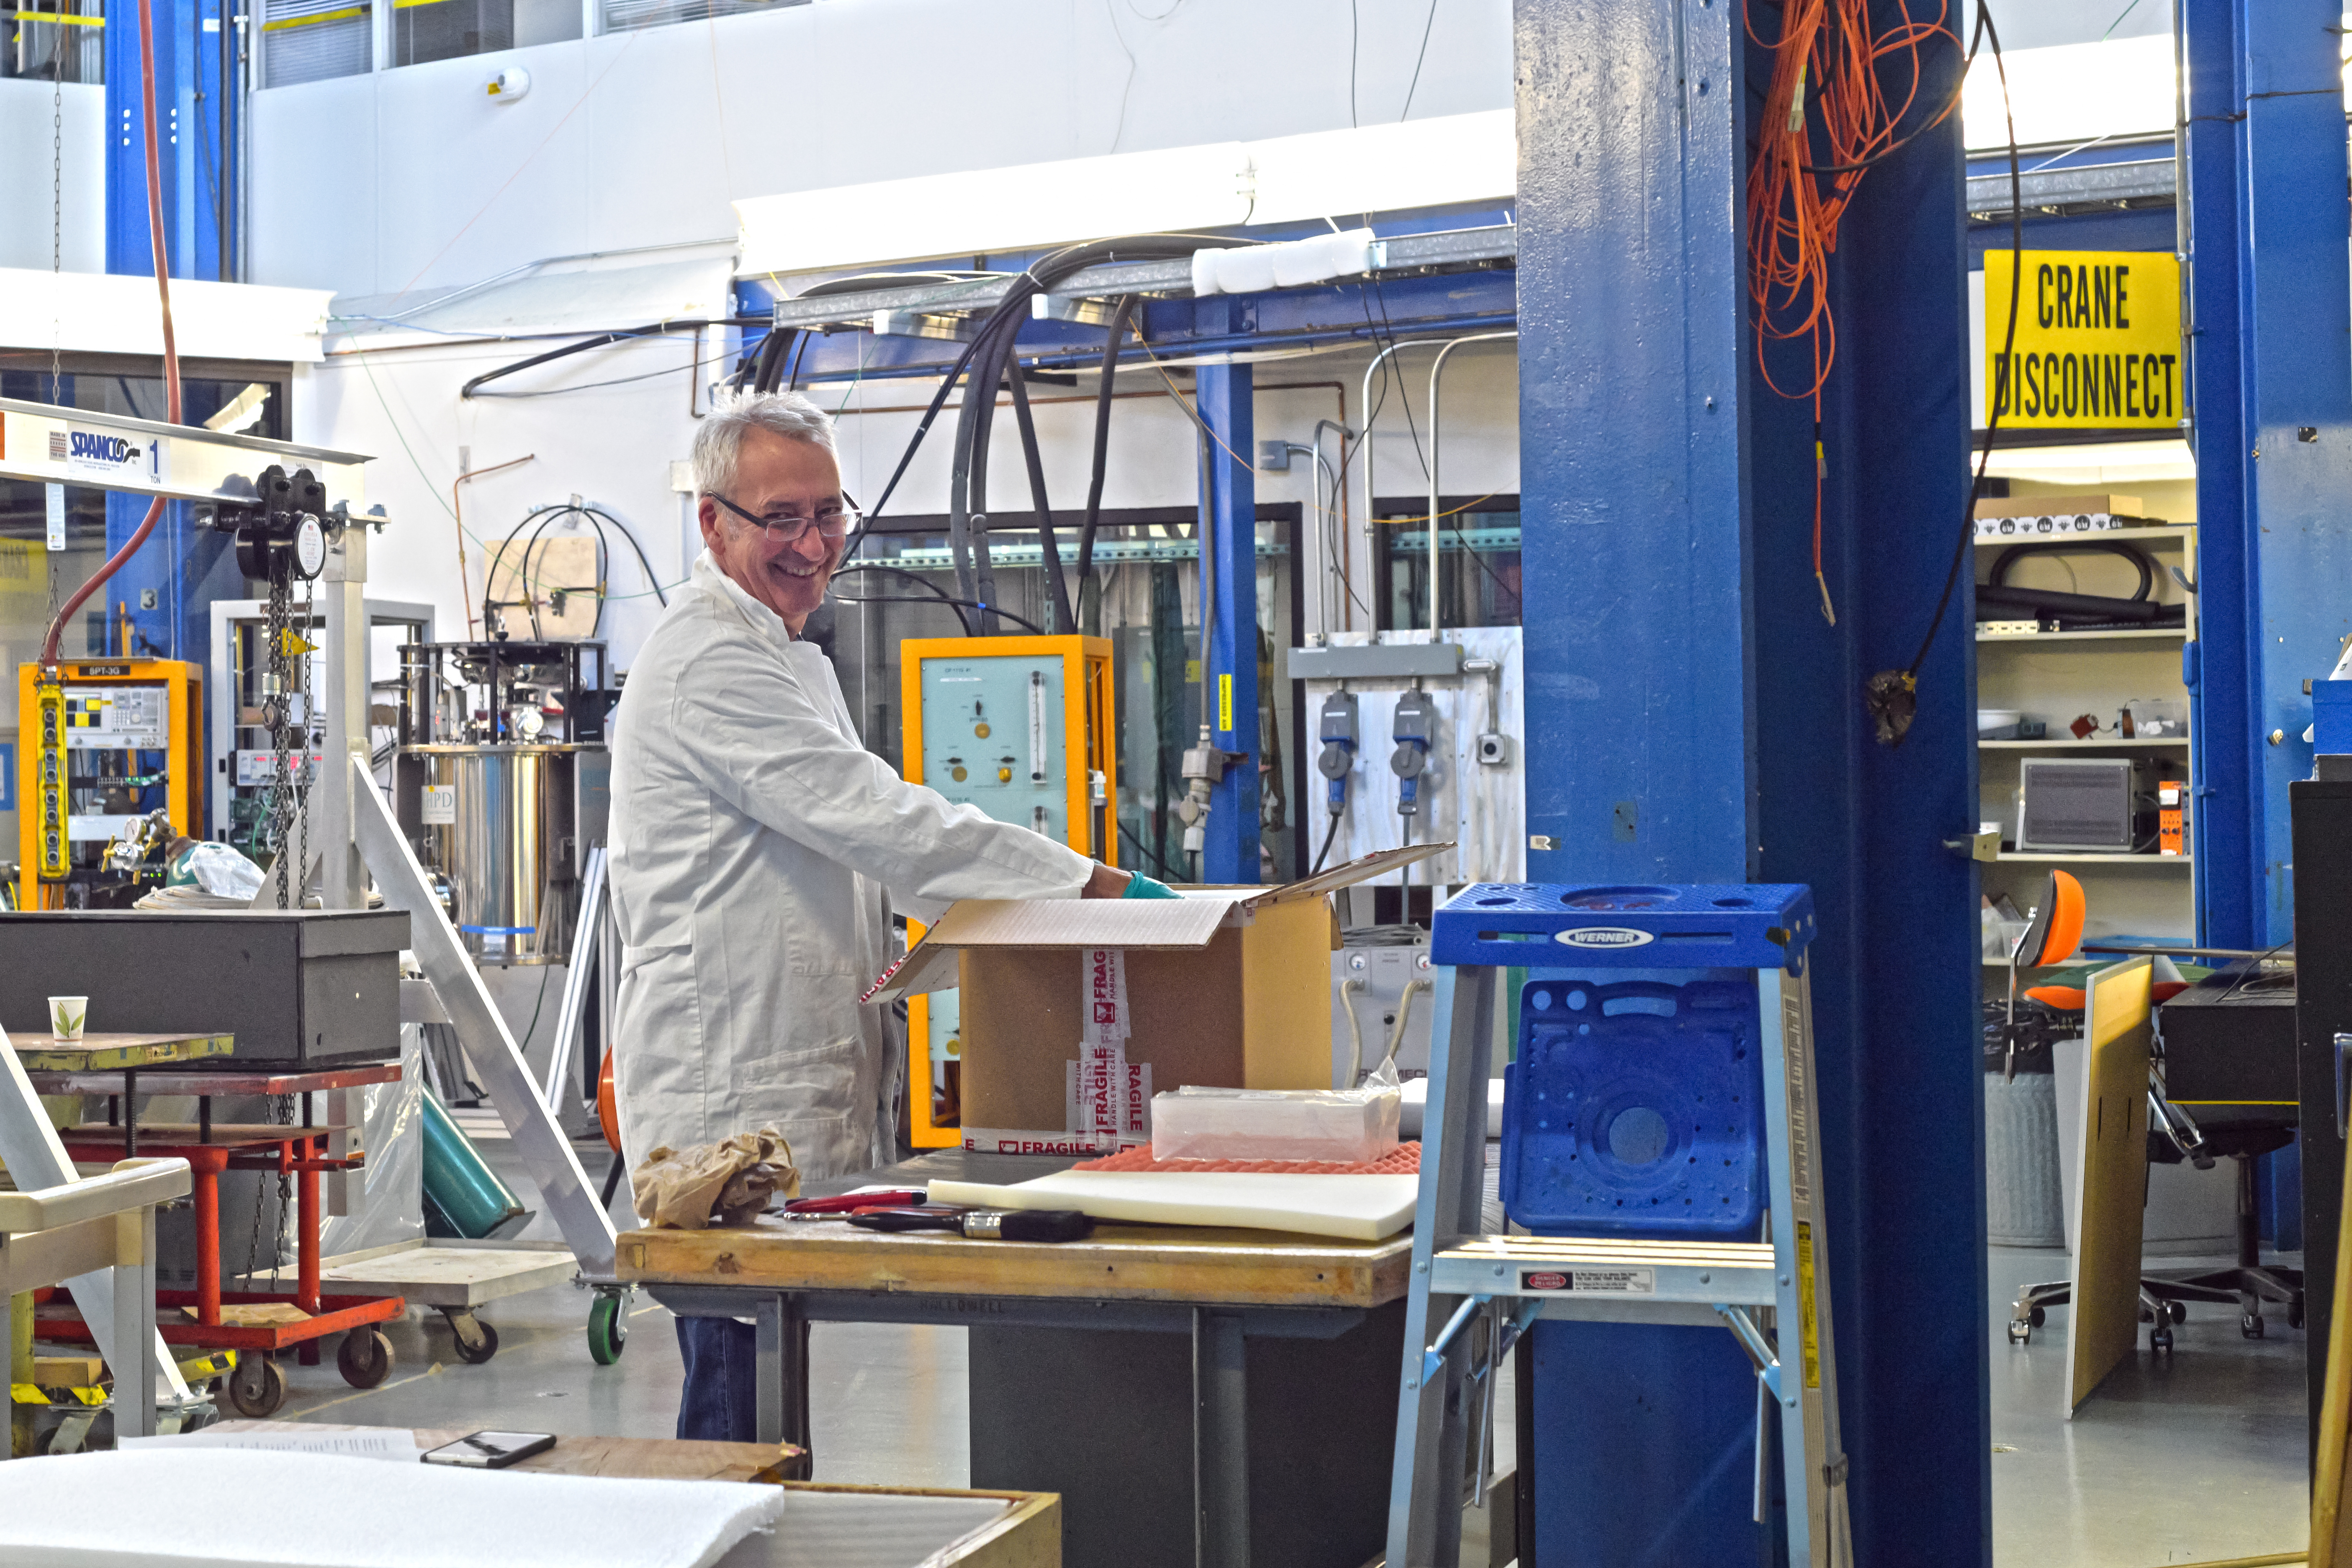 Visiting scientist Alessandro Mengucci of the Particle Physics Division Mu2e Group, unpacks pure cesium iodide crystals in Lab A at SiDet. These crystals will be used in the Mu2e experiment to measure the timing and energy of electrons. Photo: Leticia Shaddix, people